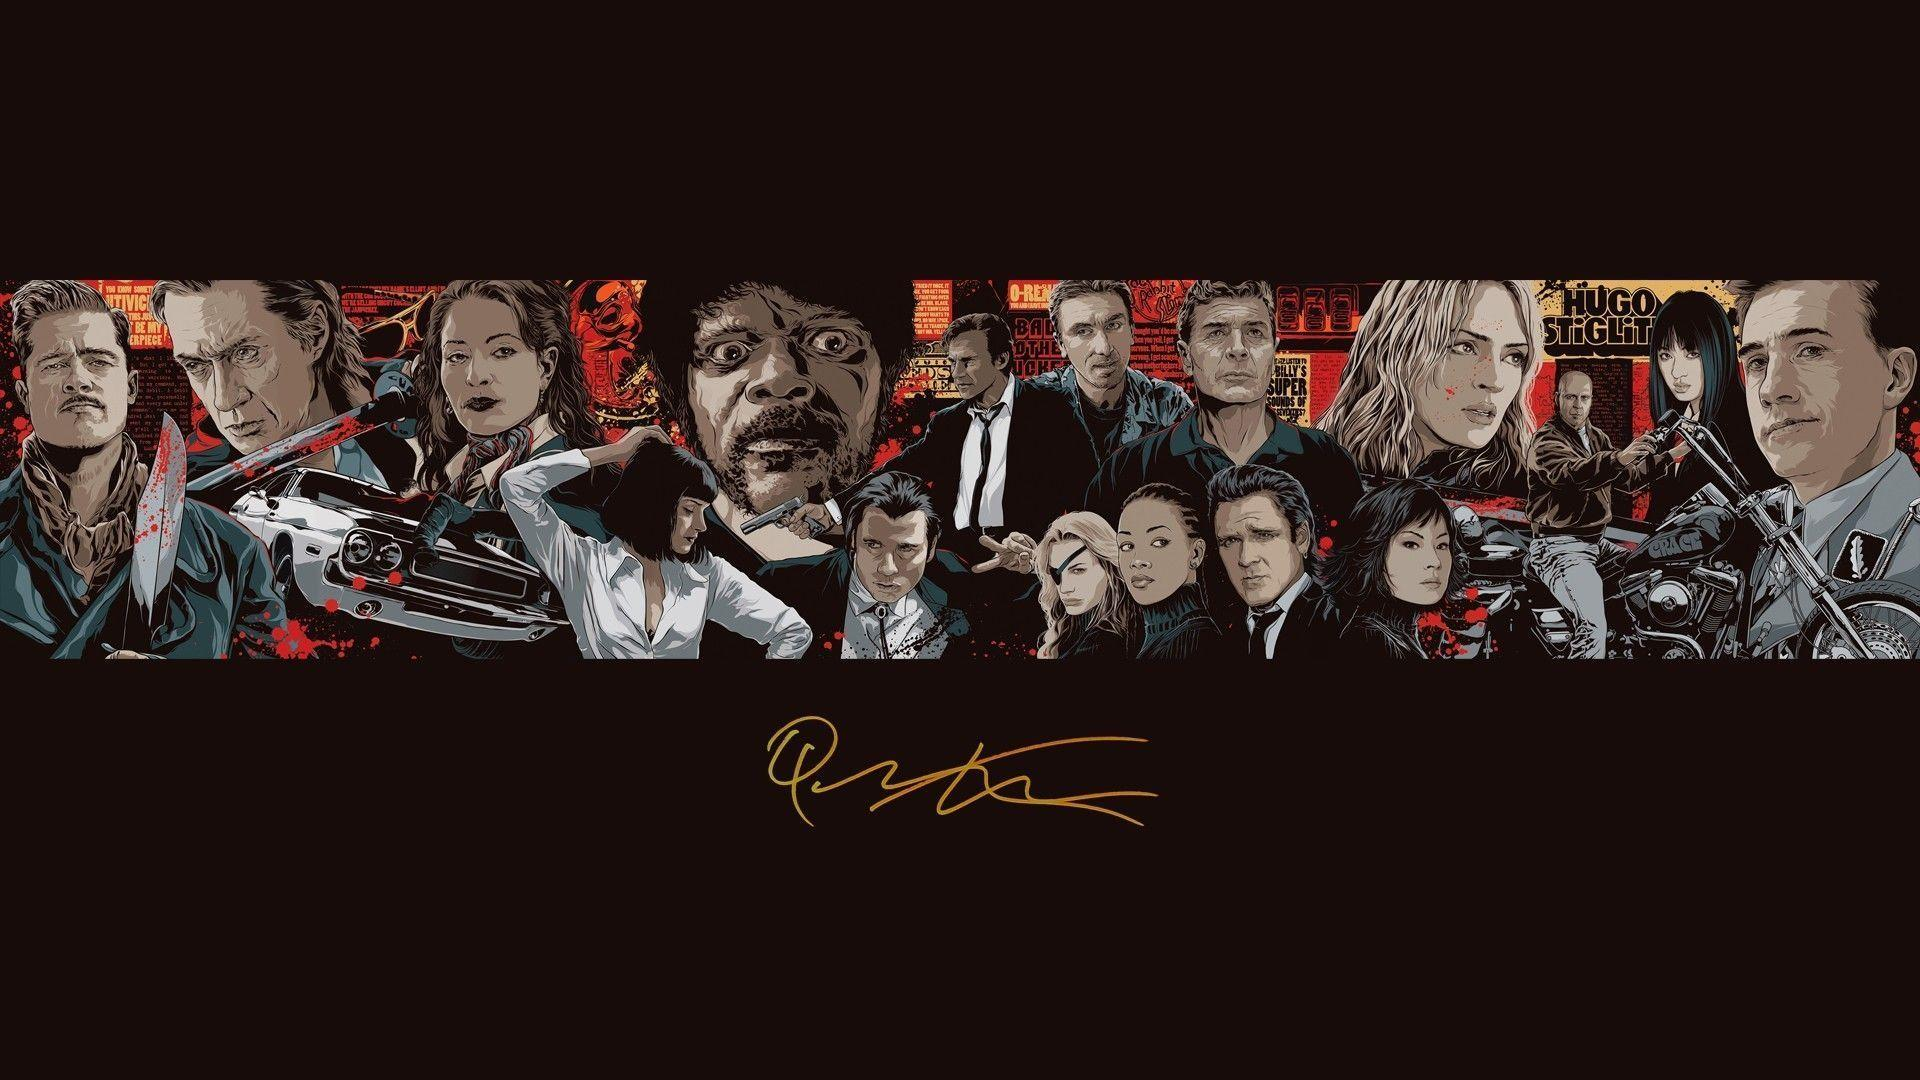 Reservoir Dogs Wallpaper 96695 HD Wallpapers  Res: 1920x1080